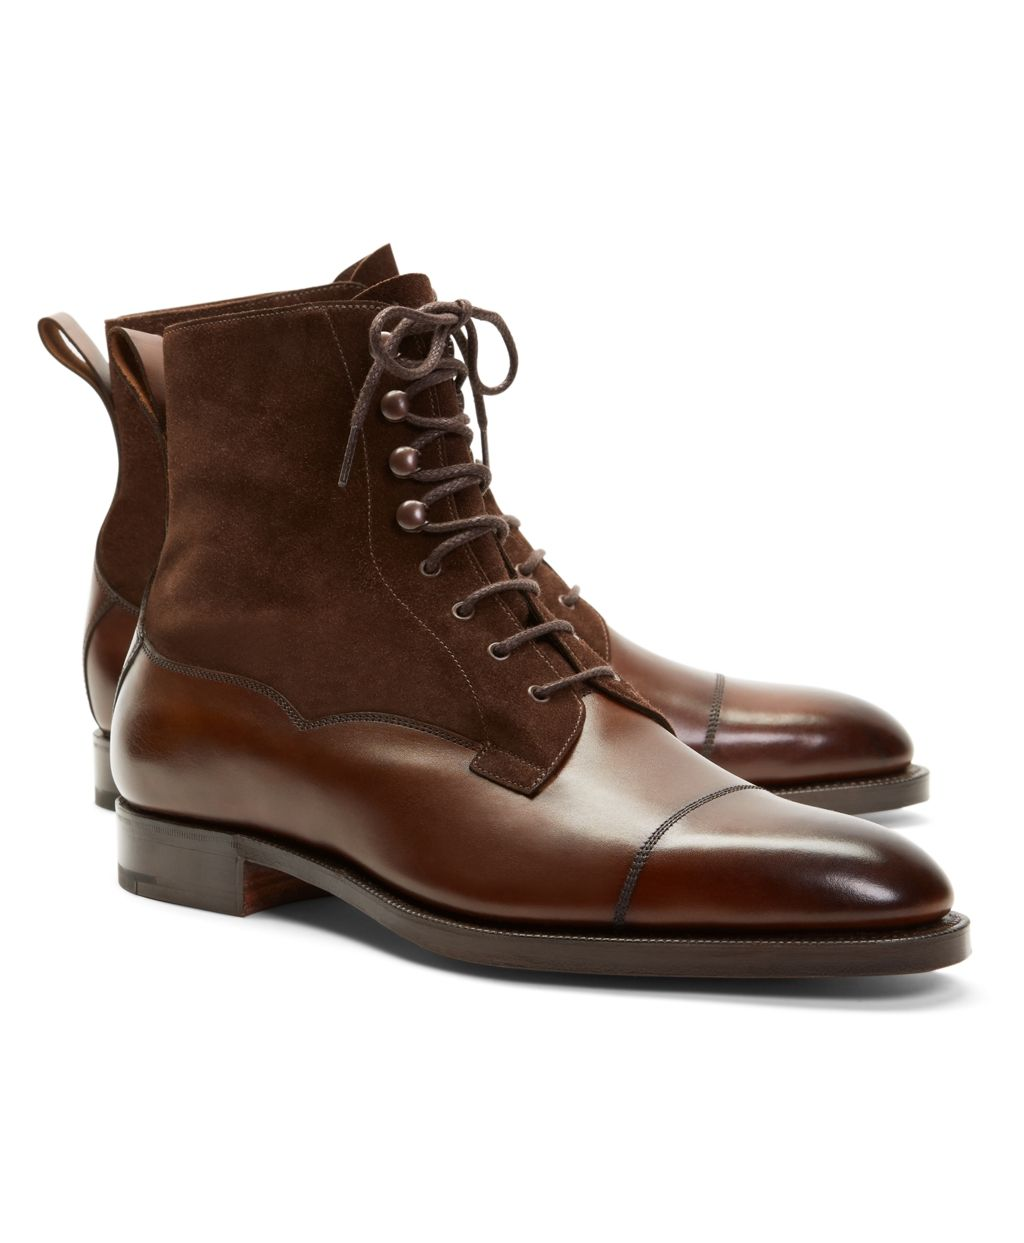 1b198a51959fb Men s Edward Green Galway Suede and Leather Boots